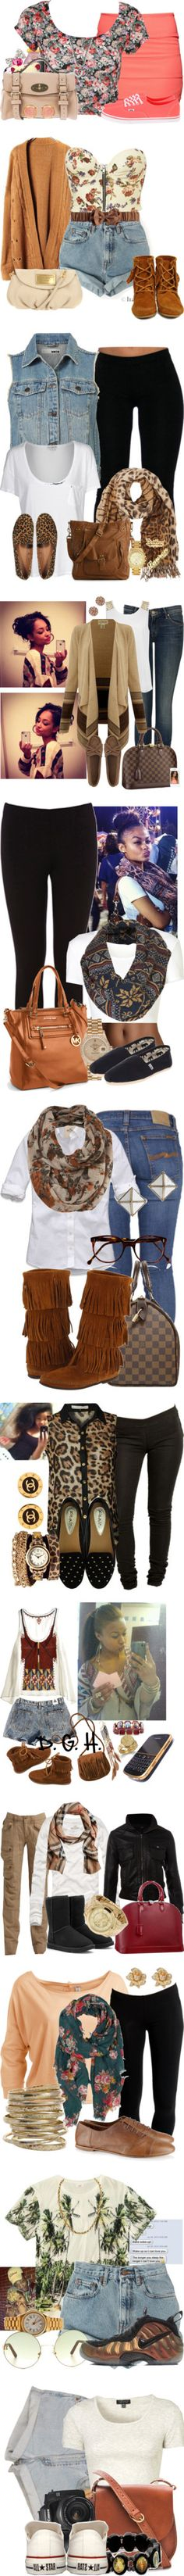 """new style ♥"" by dash-of-thug ❤ liked on Polyvore"